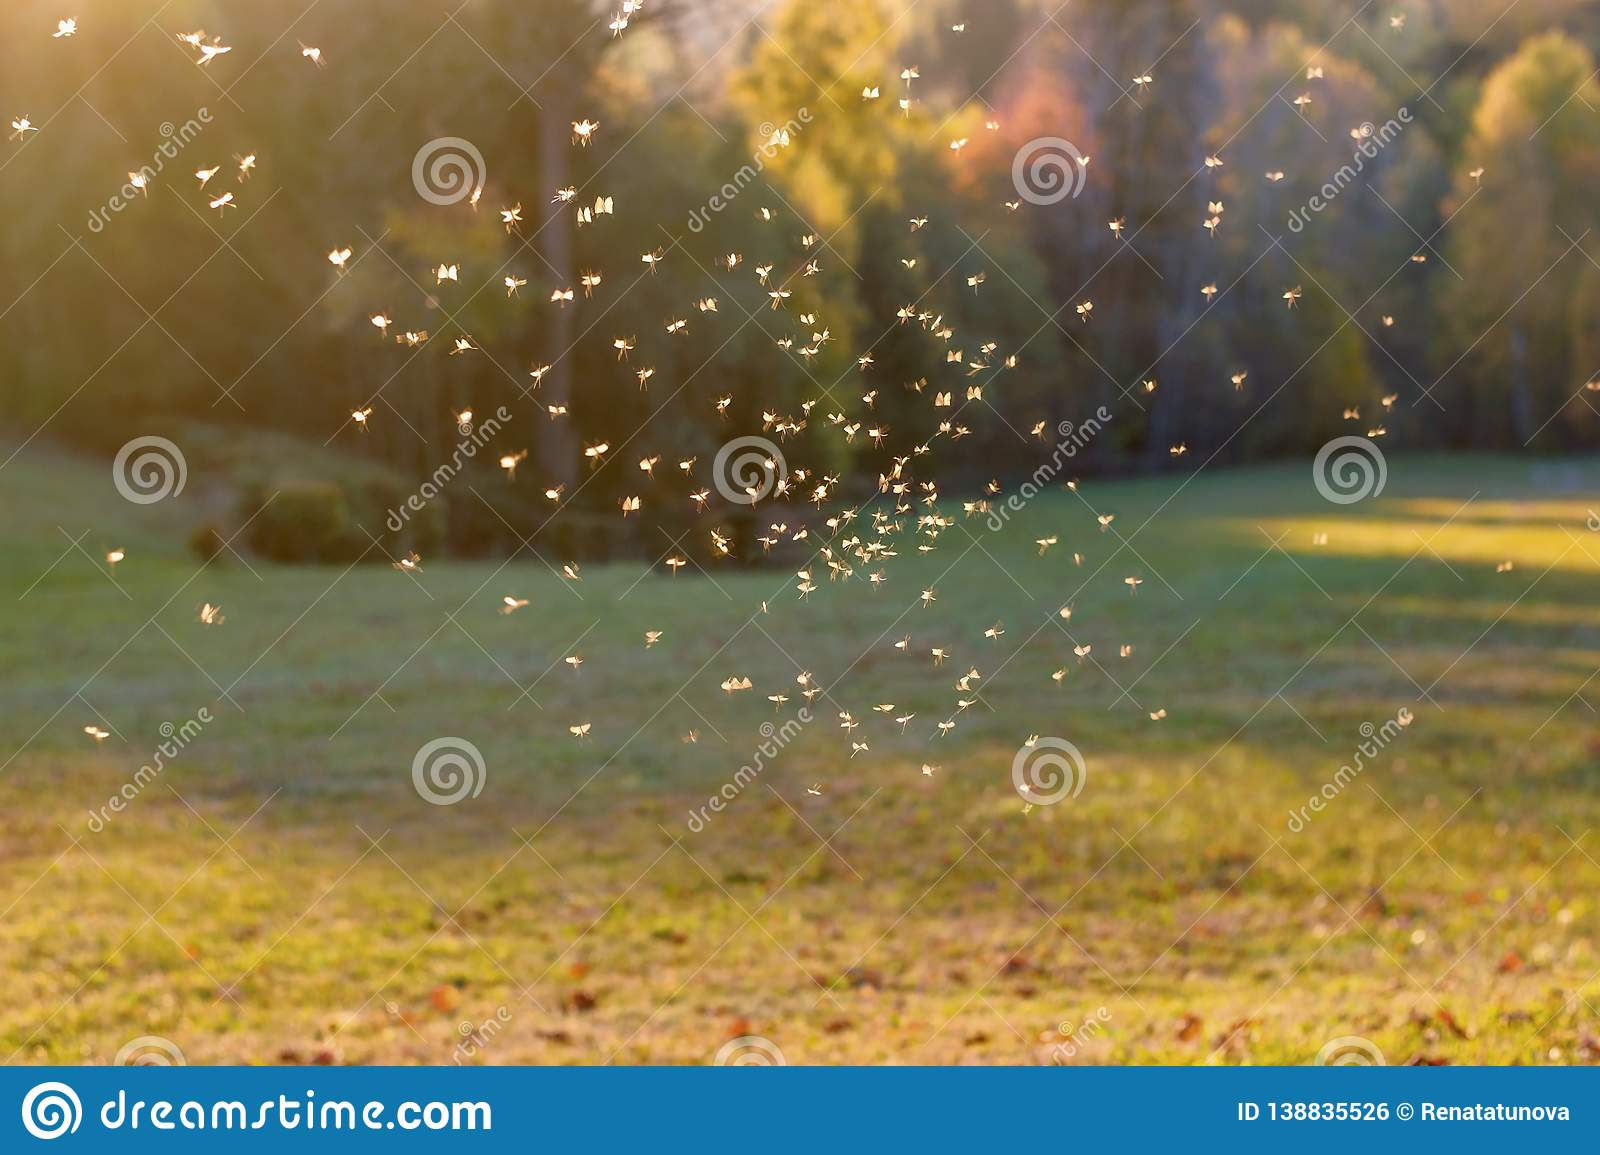 Mosquitos swarm flying in sunset light